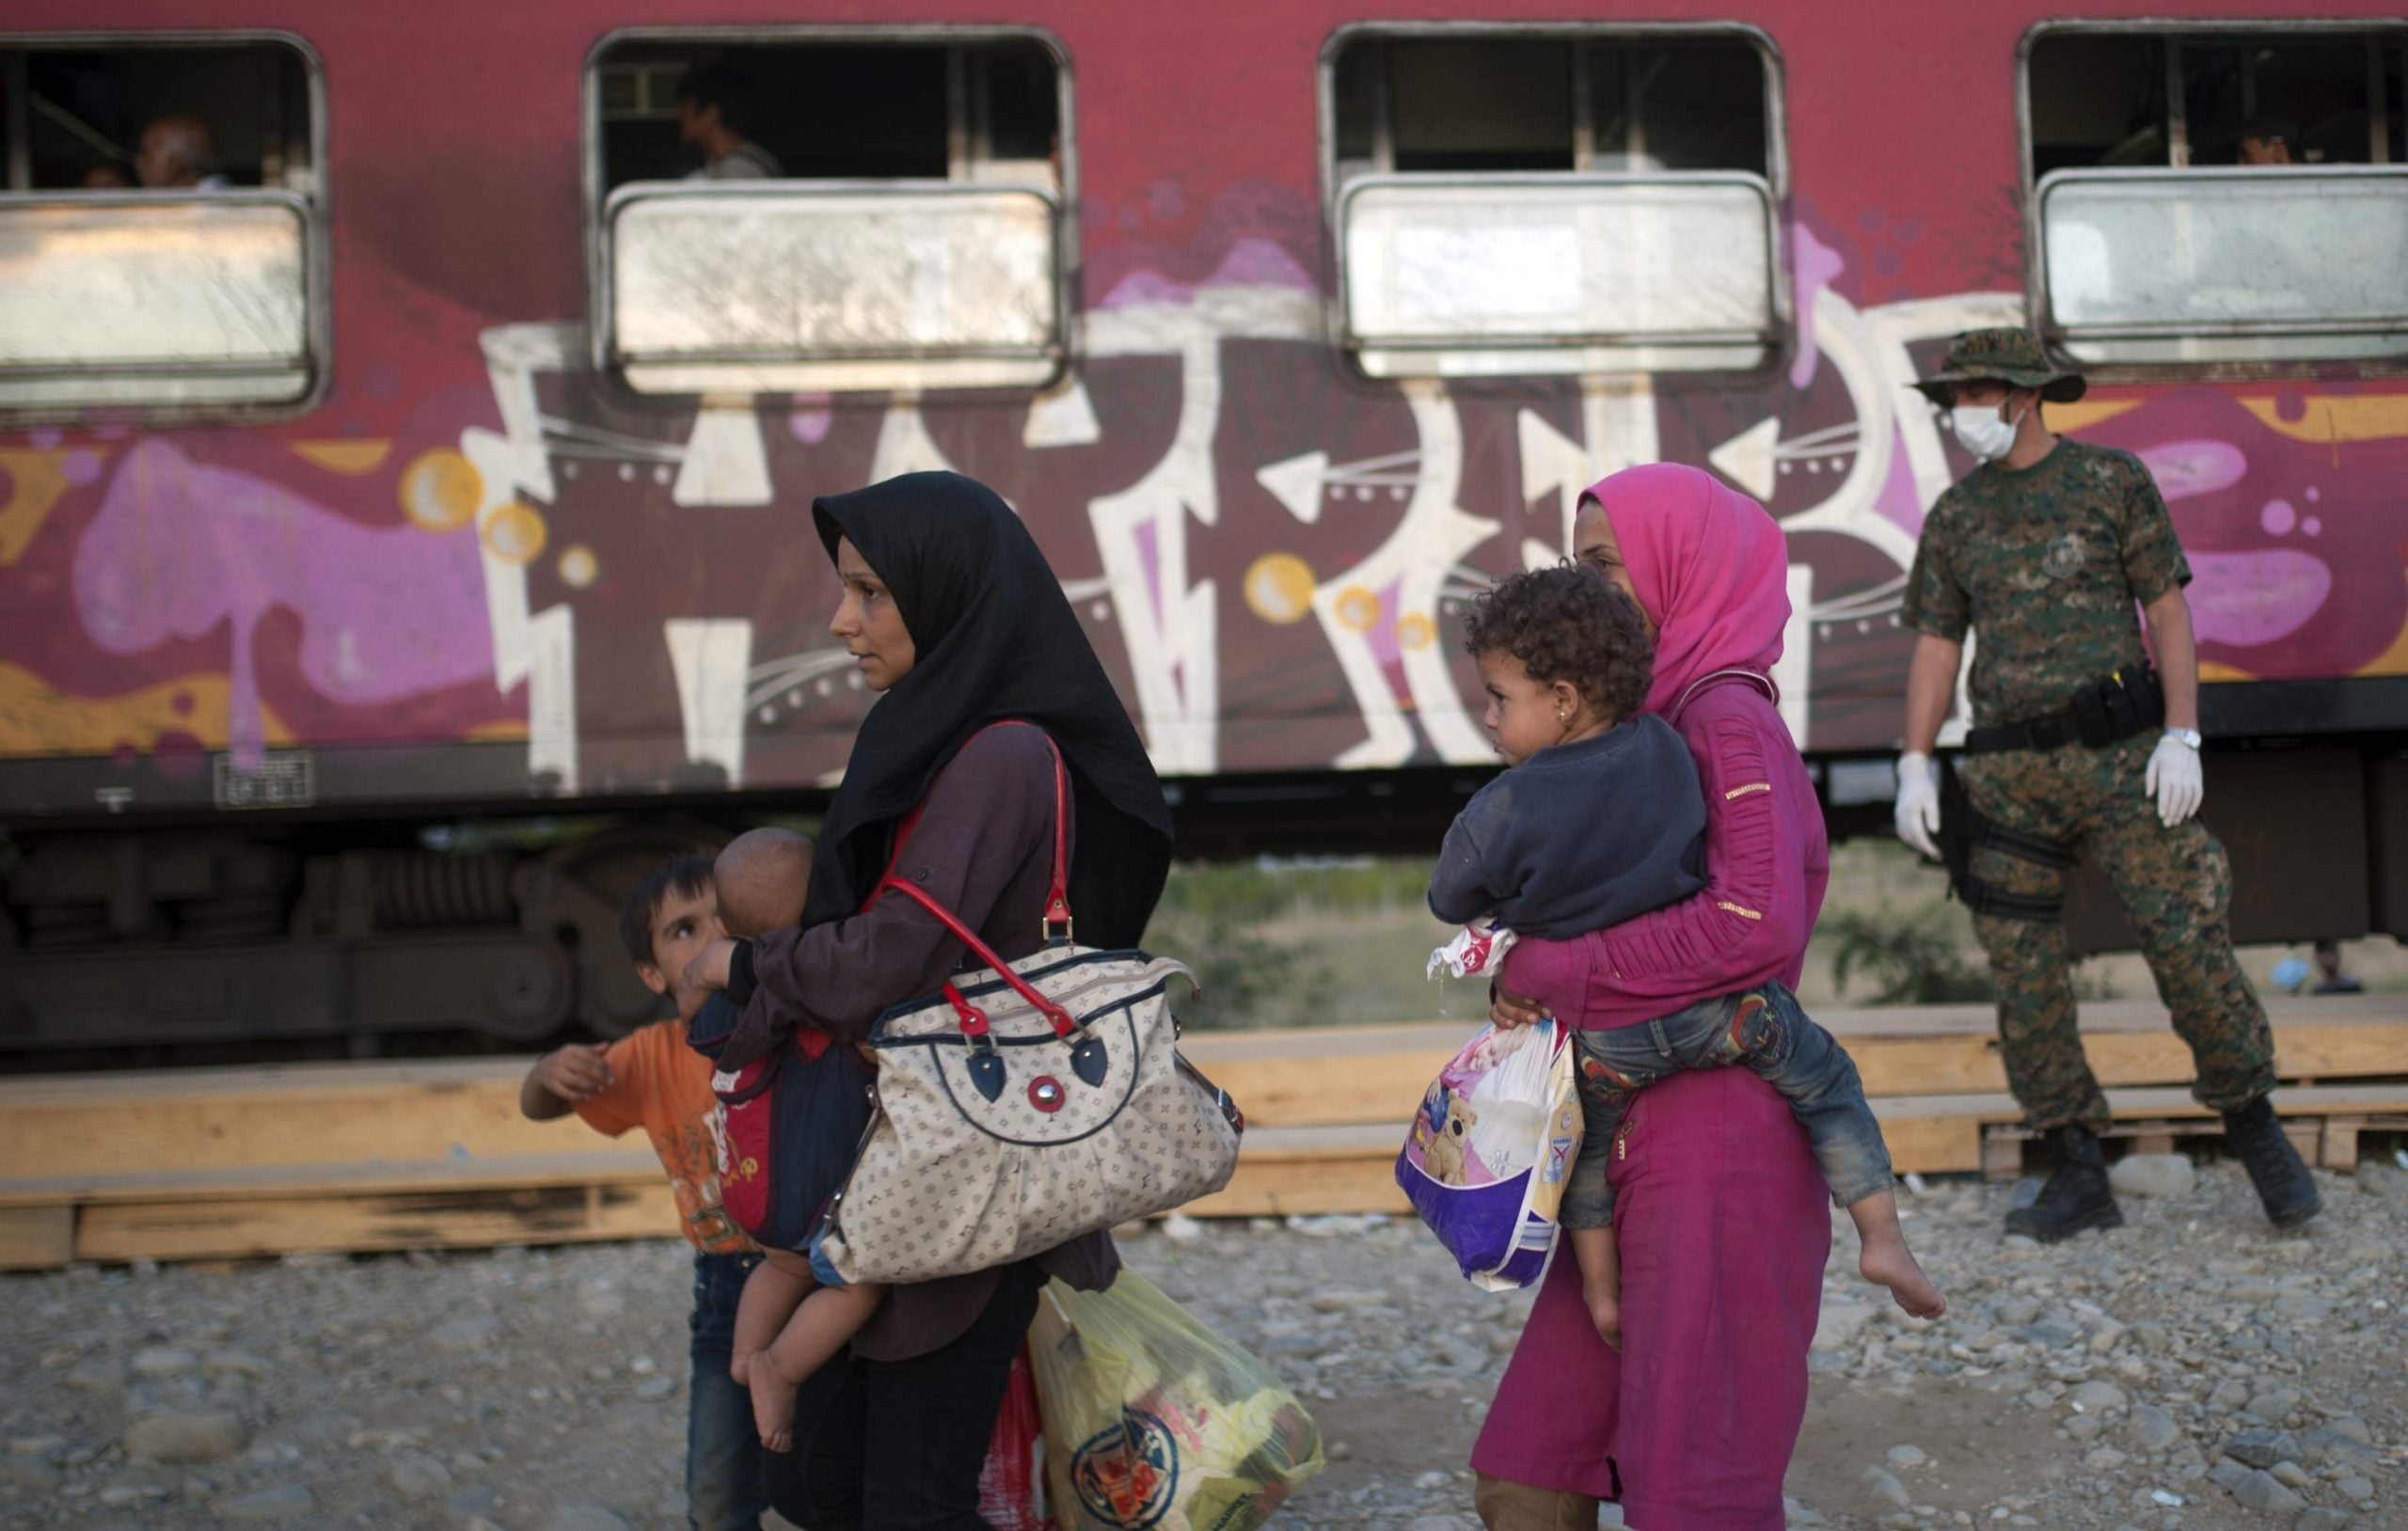 Why prioritising women and children in the refugee crisis is a terrible idea